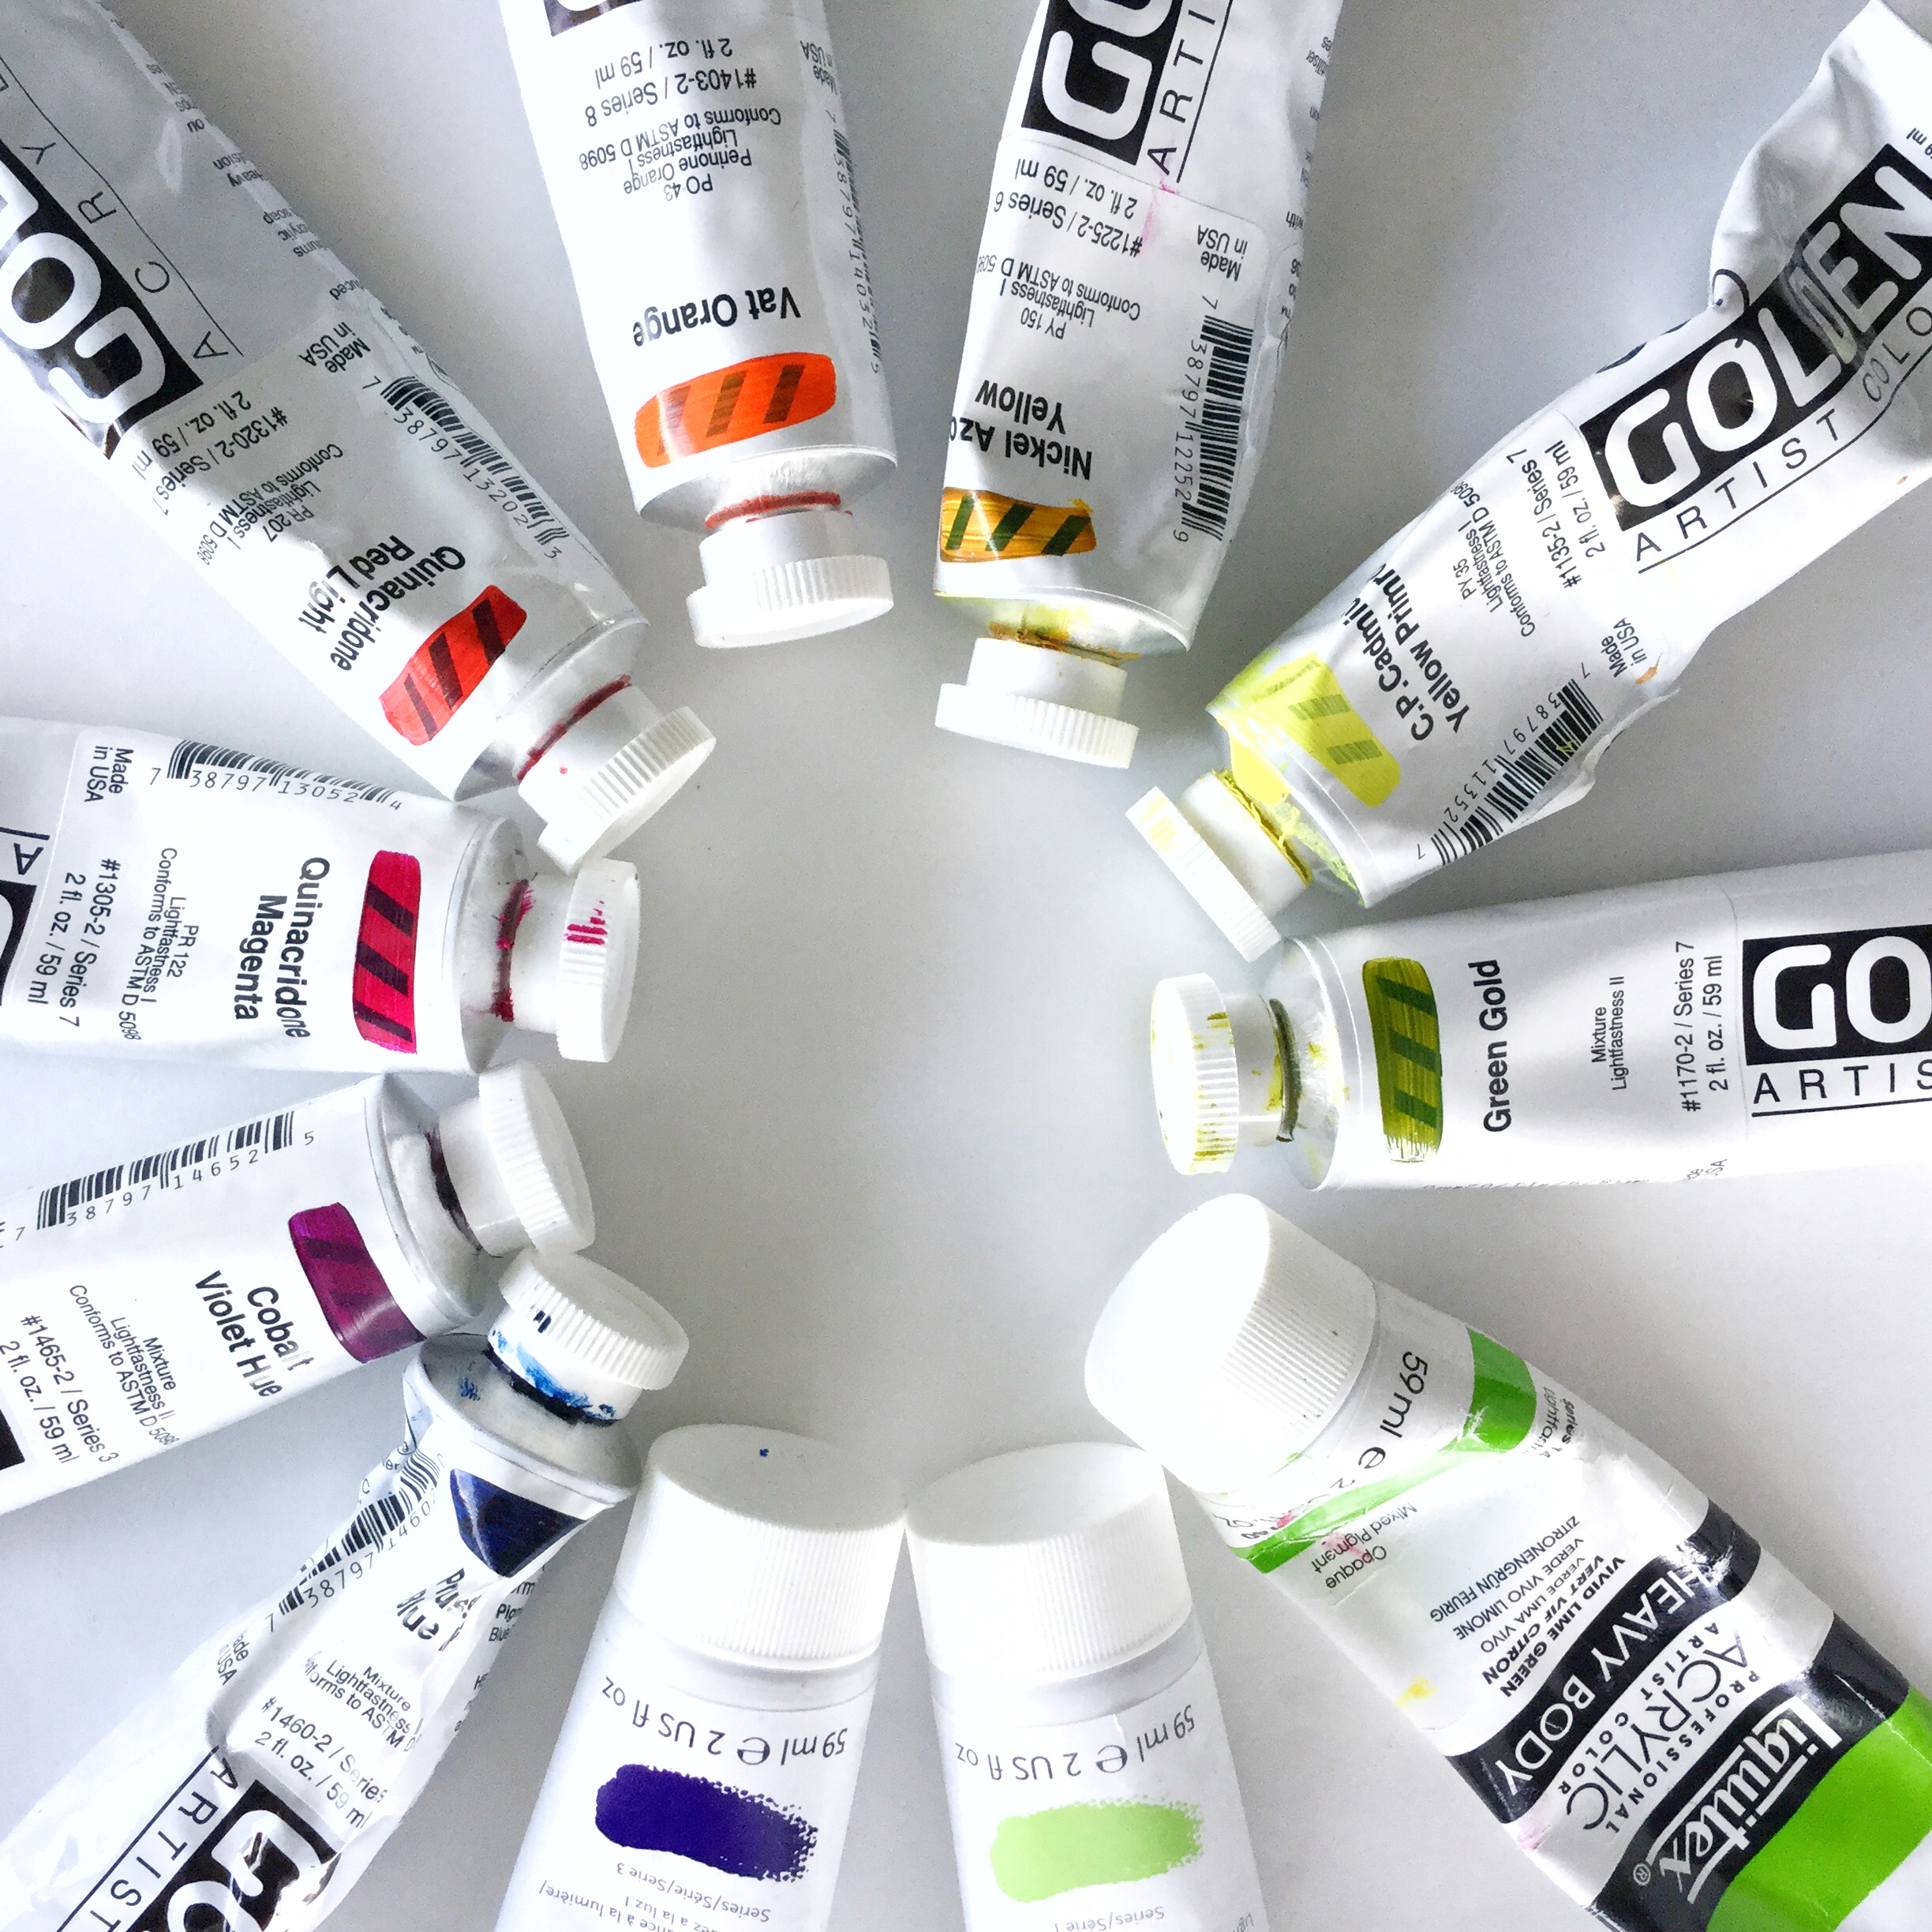 Some of my favorite tubes of paint